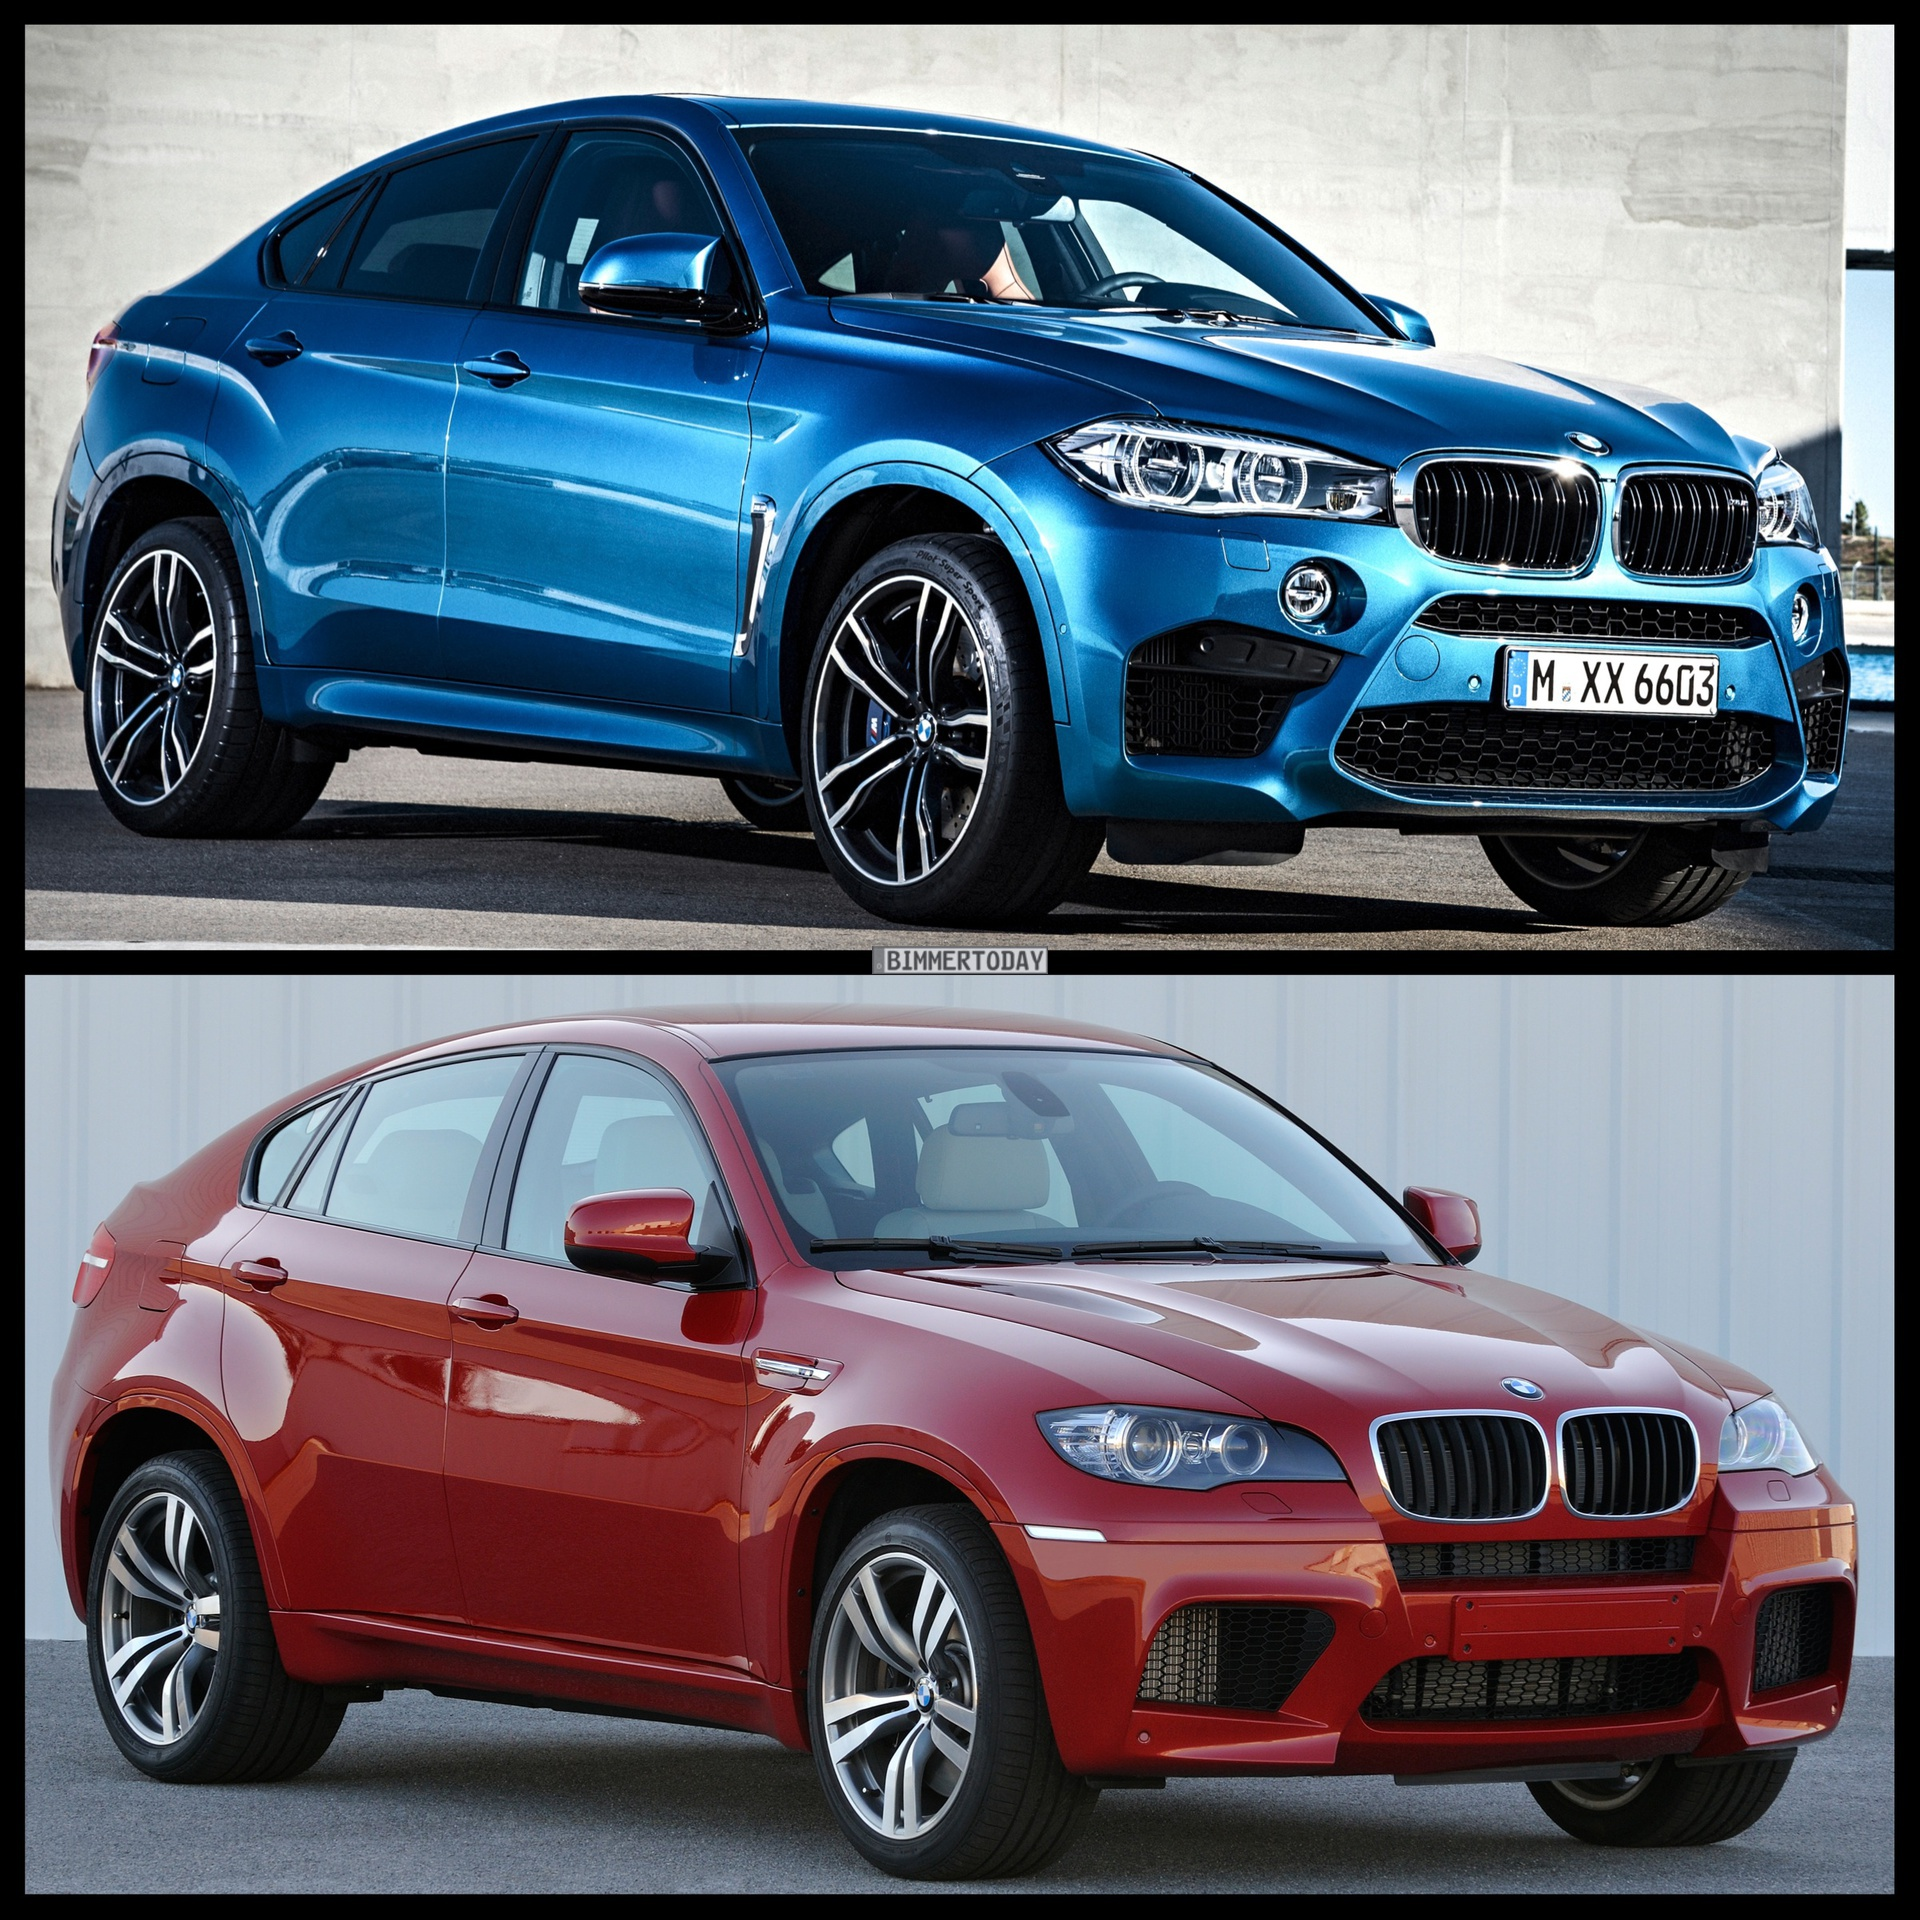 Bmw X6 Price 2015: Photo Comparison: F86 BMW X6 M Vs E71 BMW X6 M